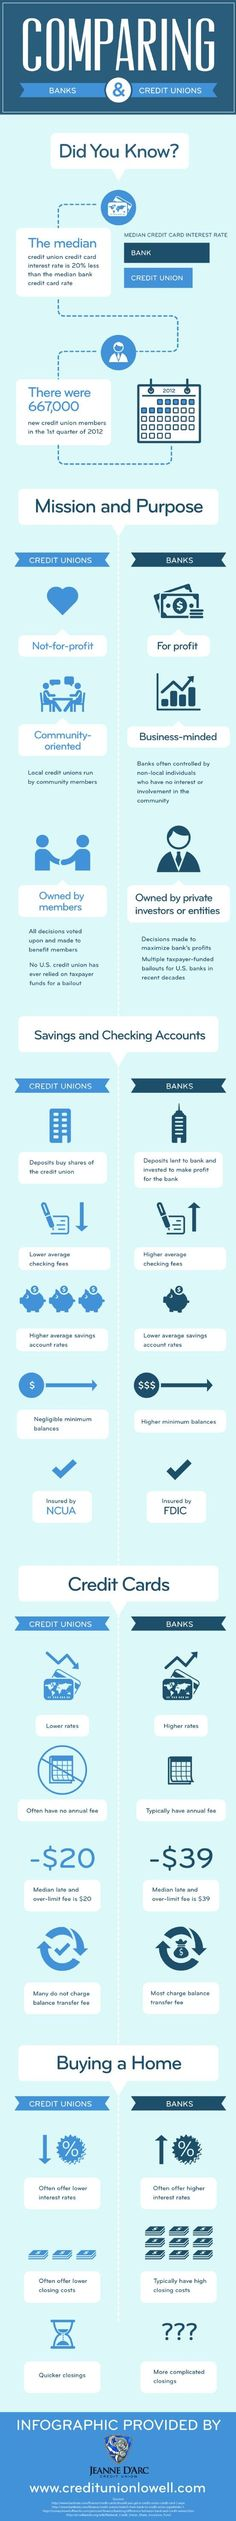 If you're like most people looking to buy a new house, you probably have questions about the closing costs and interest rates associated with your mortgage loan. Click on this infographic to learn how credit unions can help you save when buying a home.